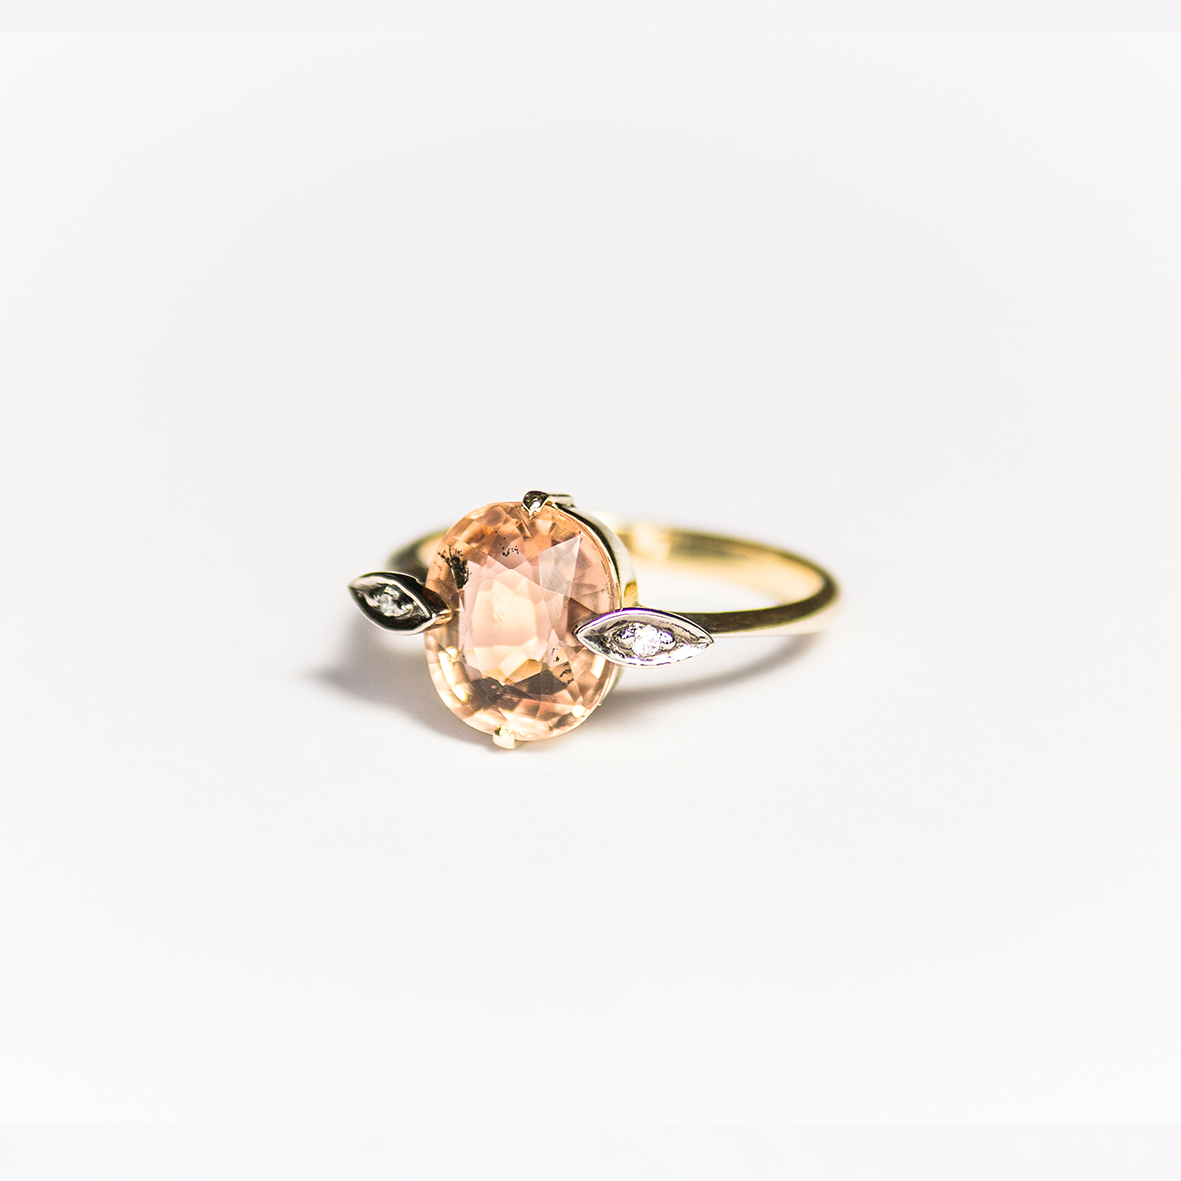 1. OONA_engagement_principal_peach tourmaline ring